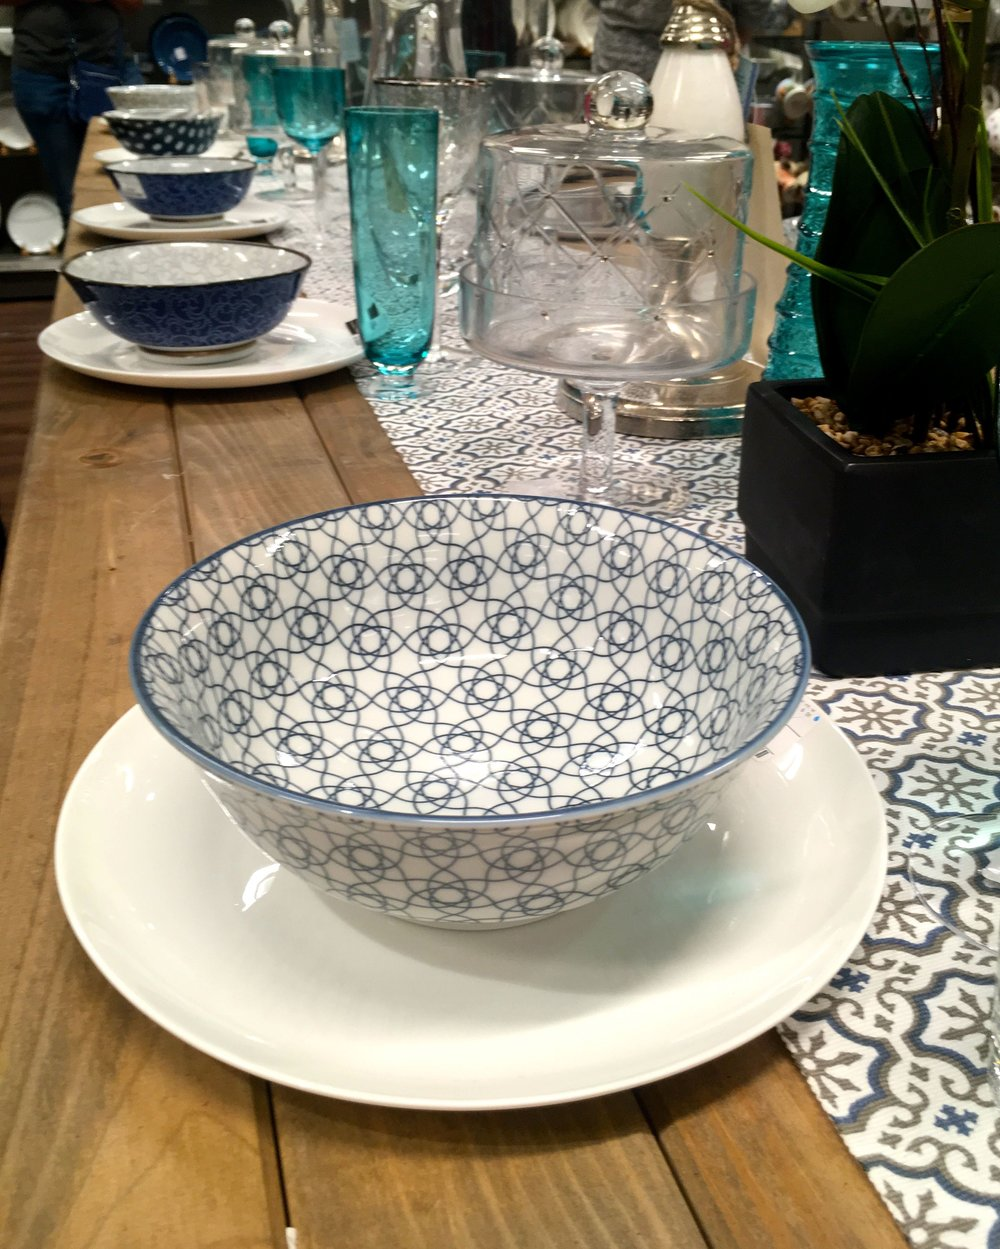 patterned tableware at the new HomeSense store in Greenwich